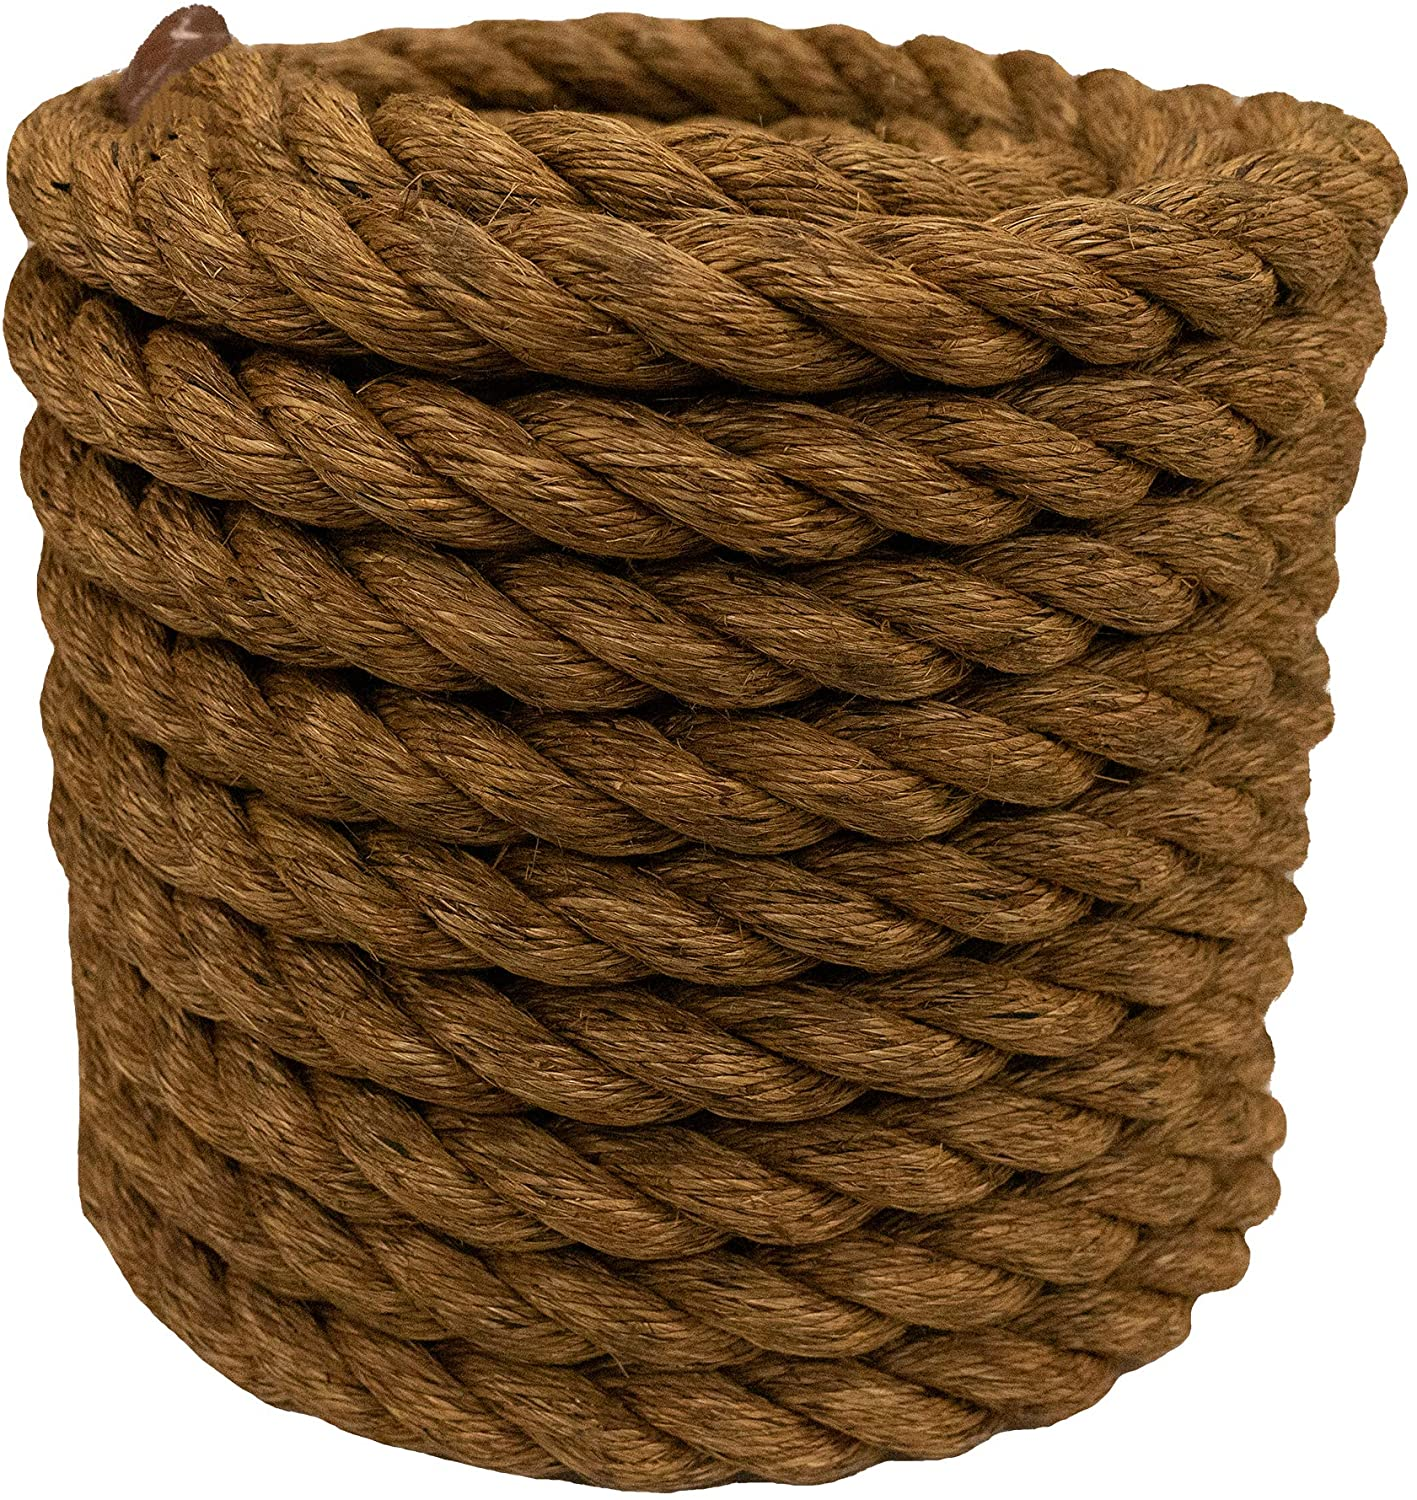 Manila Rope | Treated Natural Fiber | 3 Strand Twisted | Indoor or Outdoor Decorative Projects | 3/4 inch x 50 feet